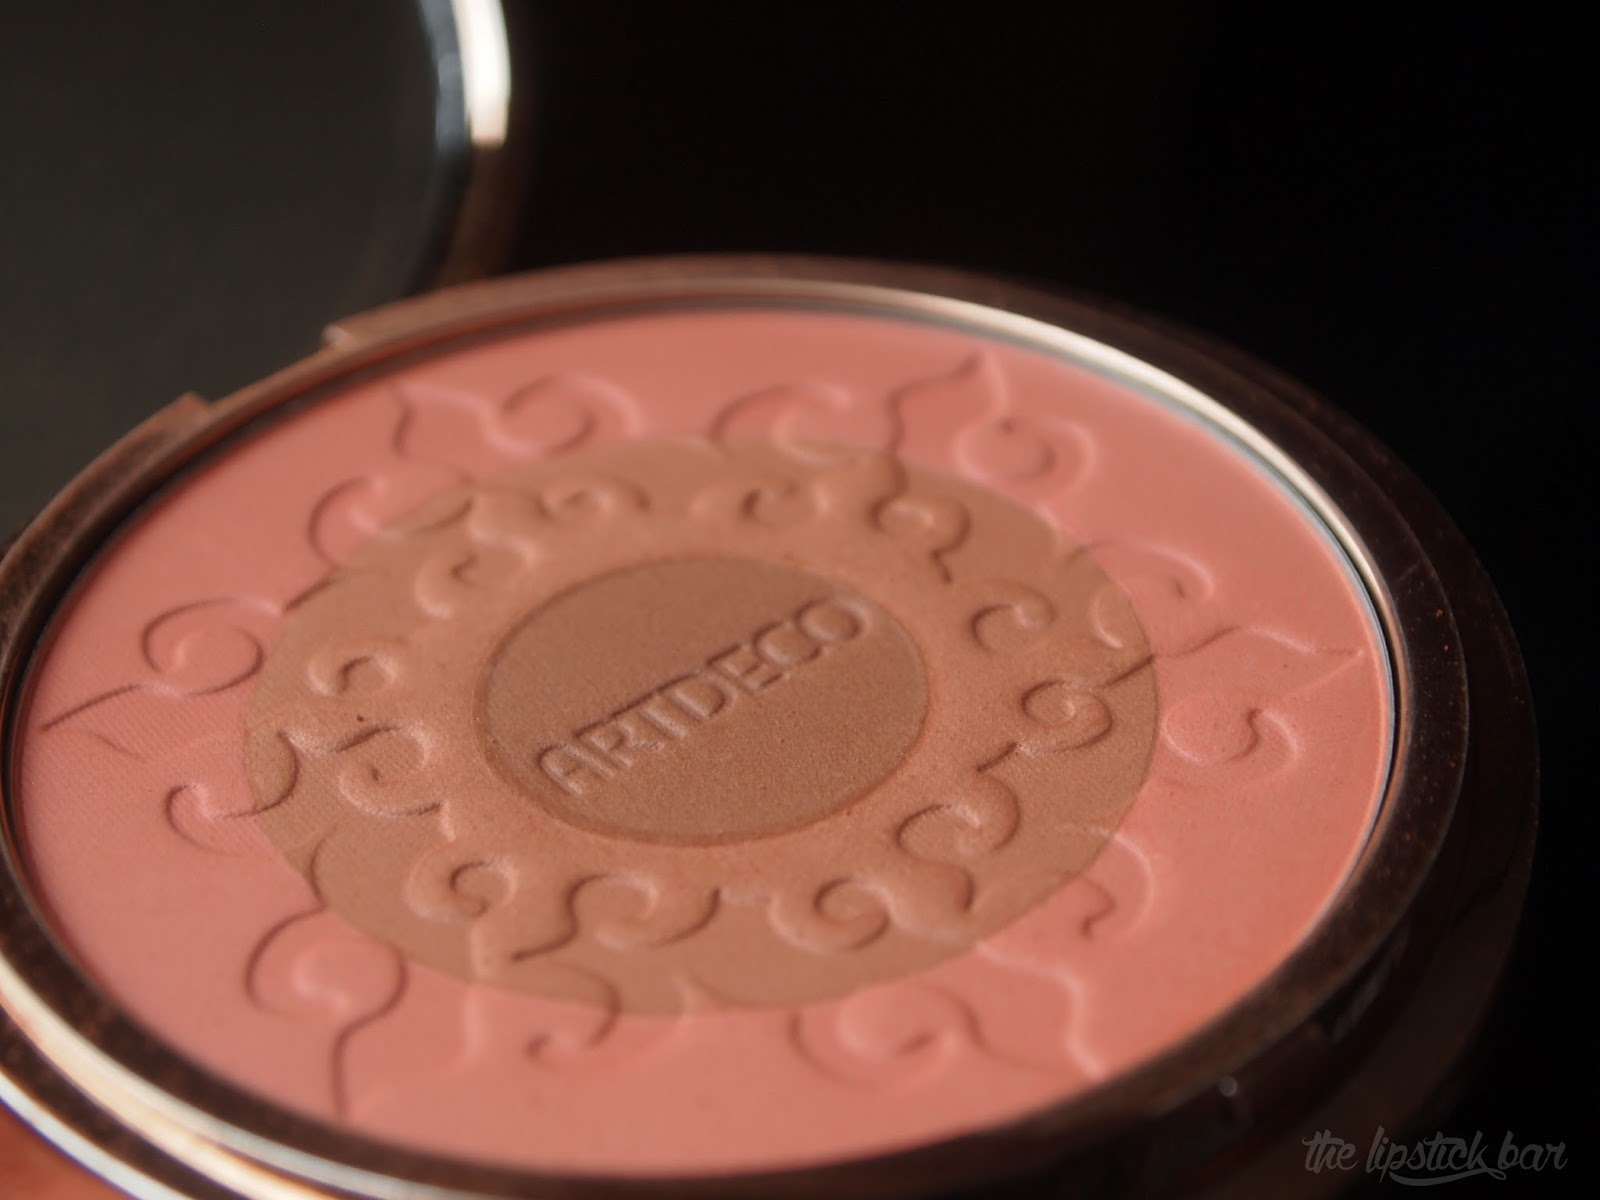 Artdeco Sunshine blush